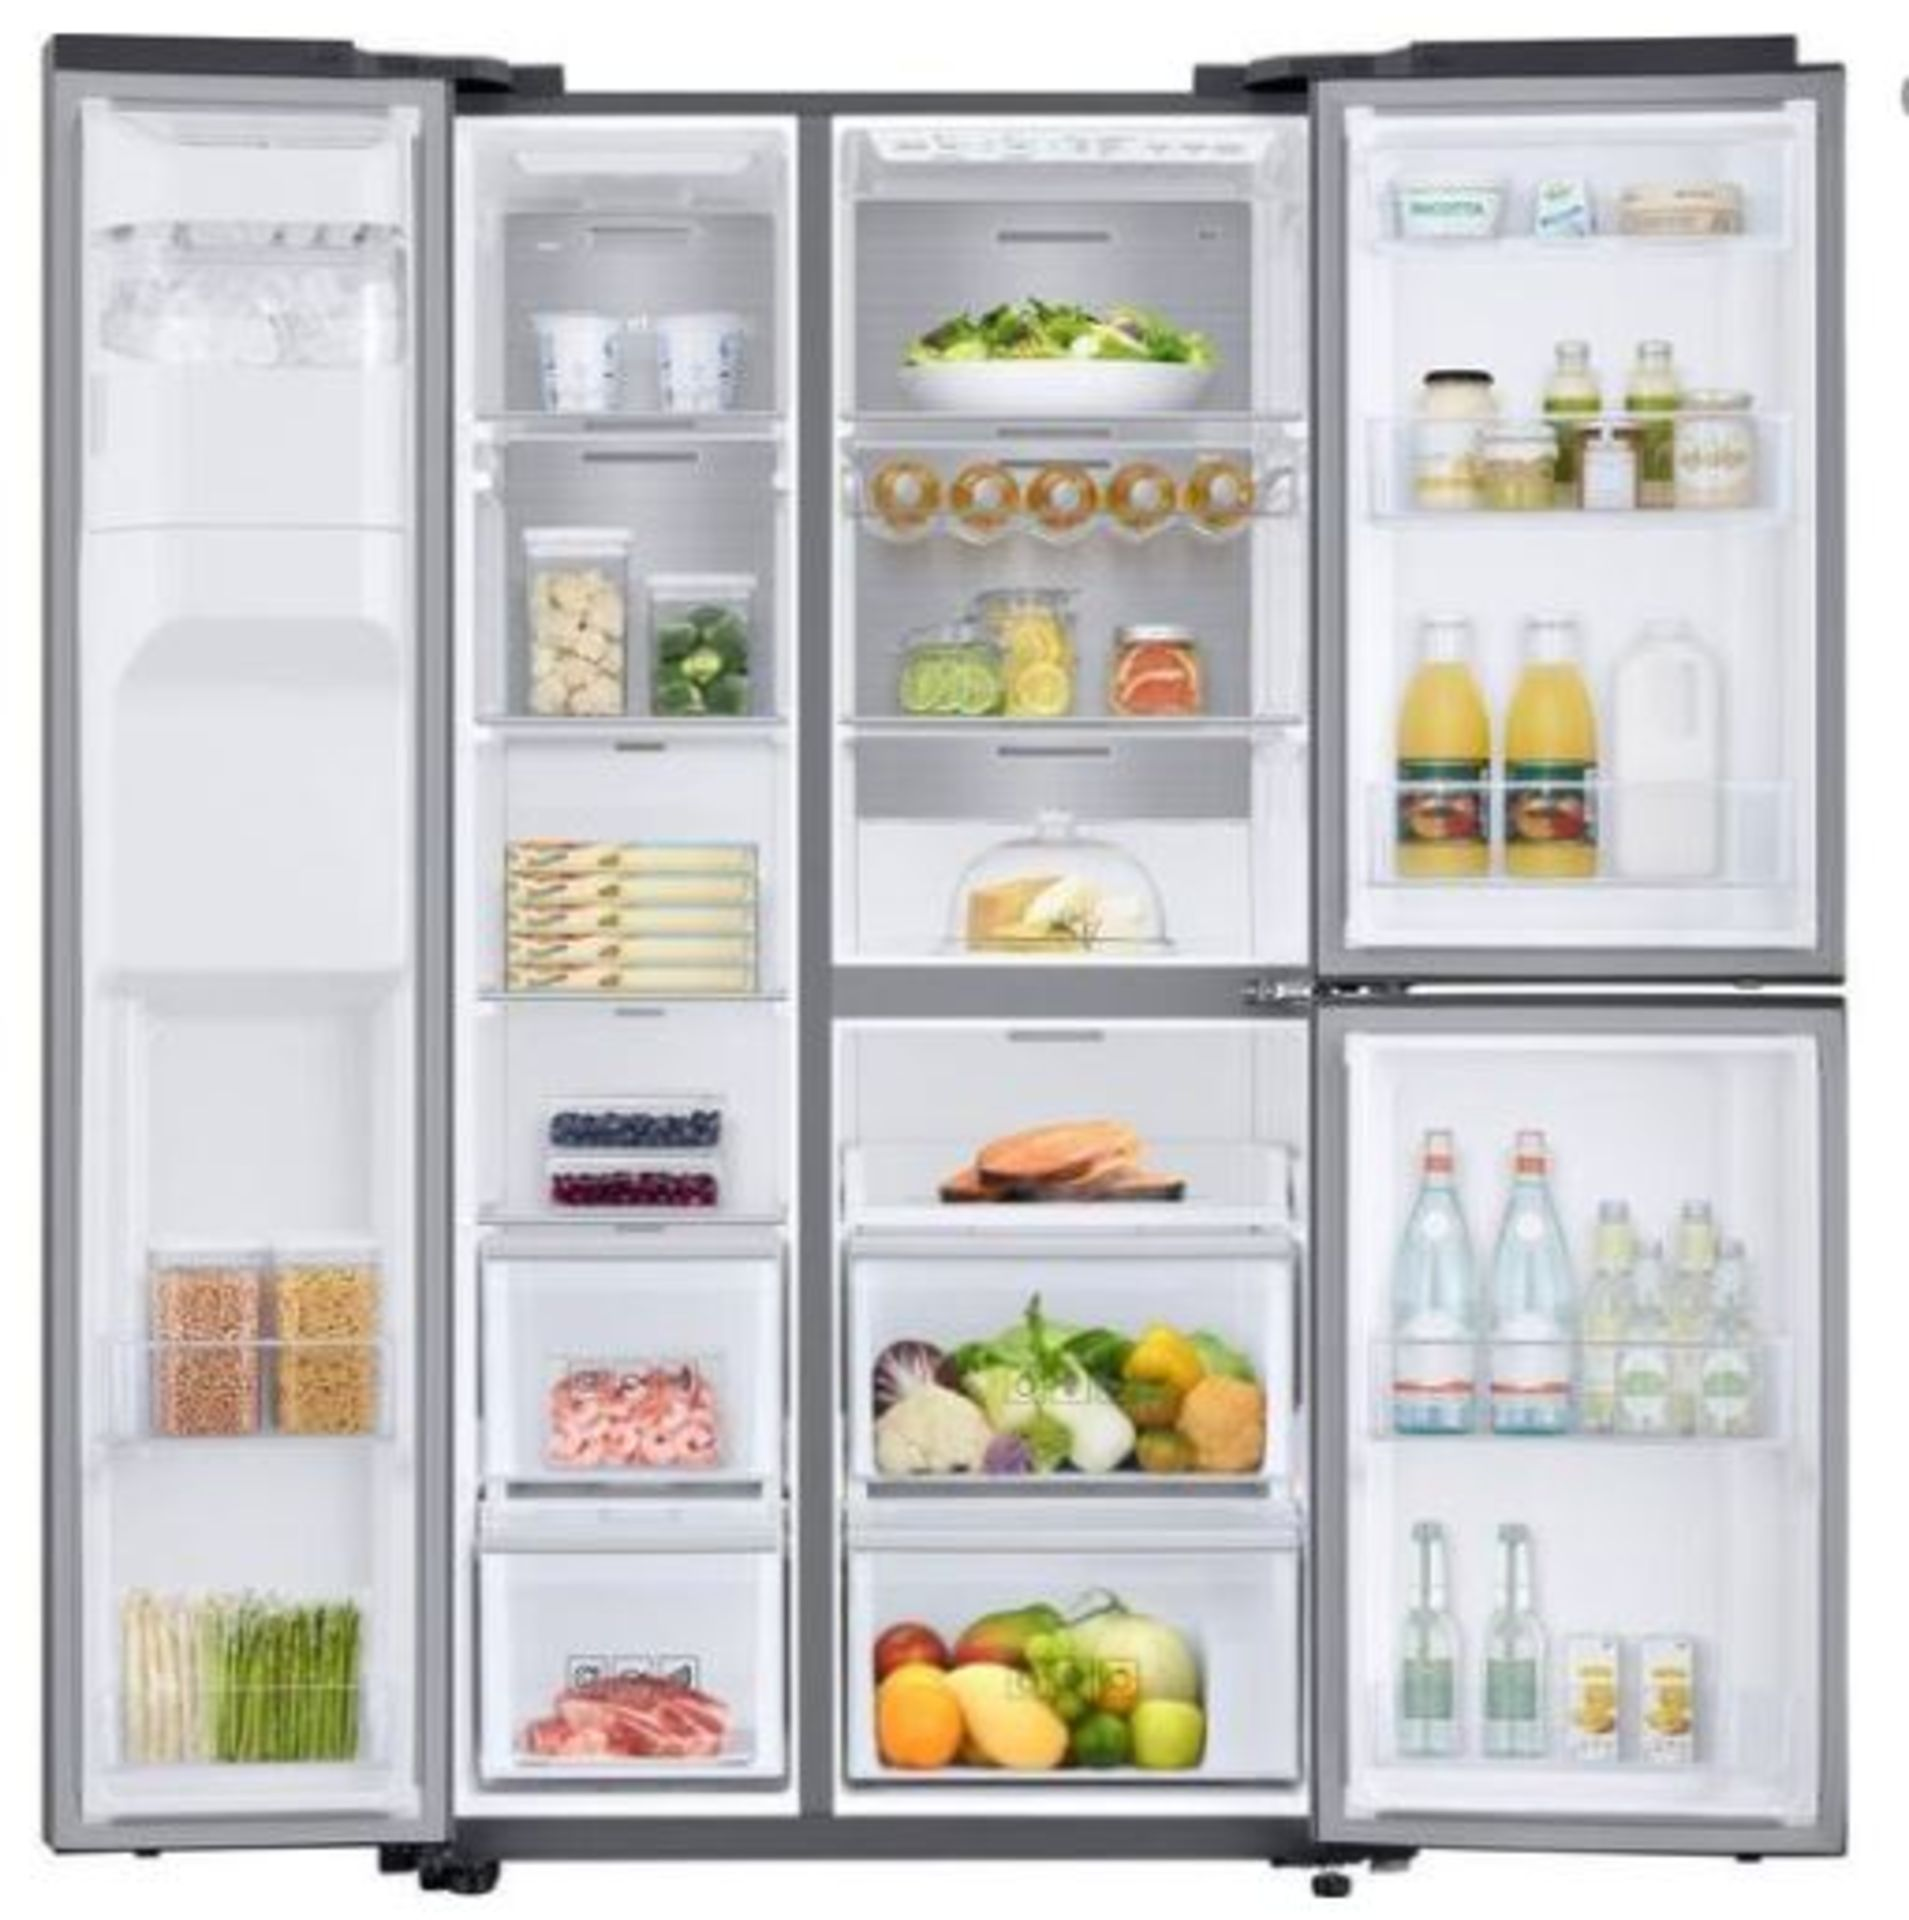 Pallet of 1 Samsung Water & Ice Fridge freezer. Latest selling price £1,769.99* - Image 2 of 10